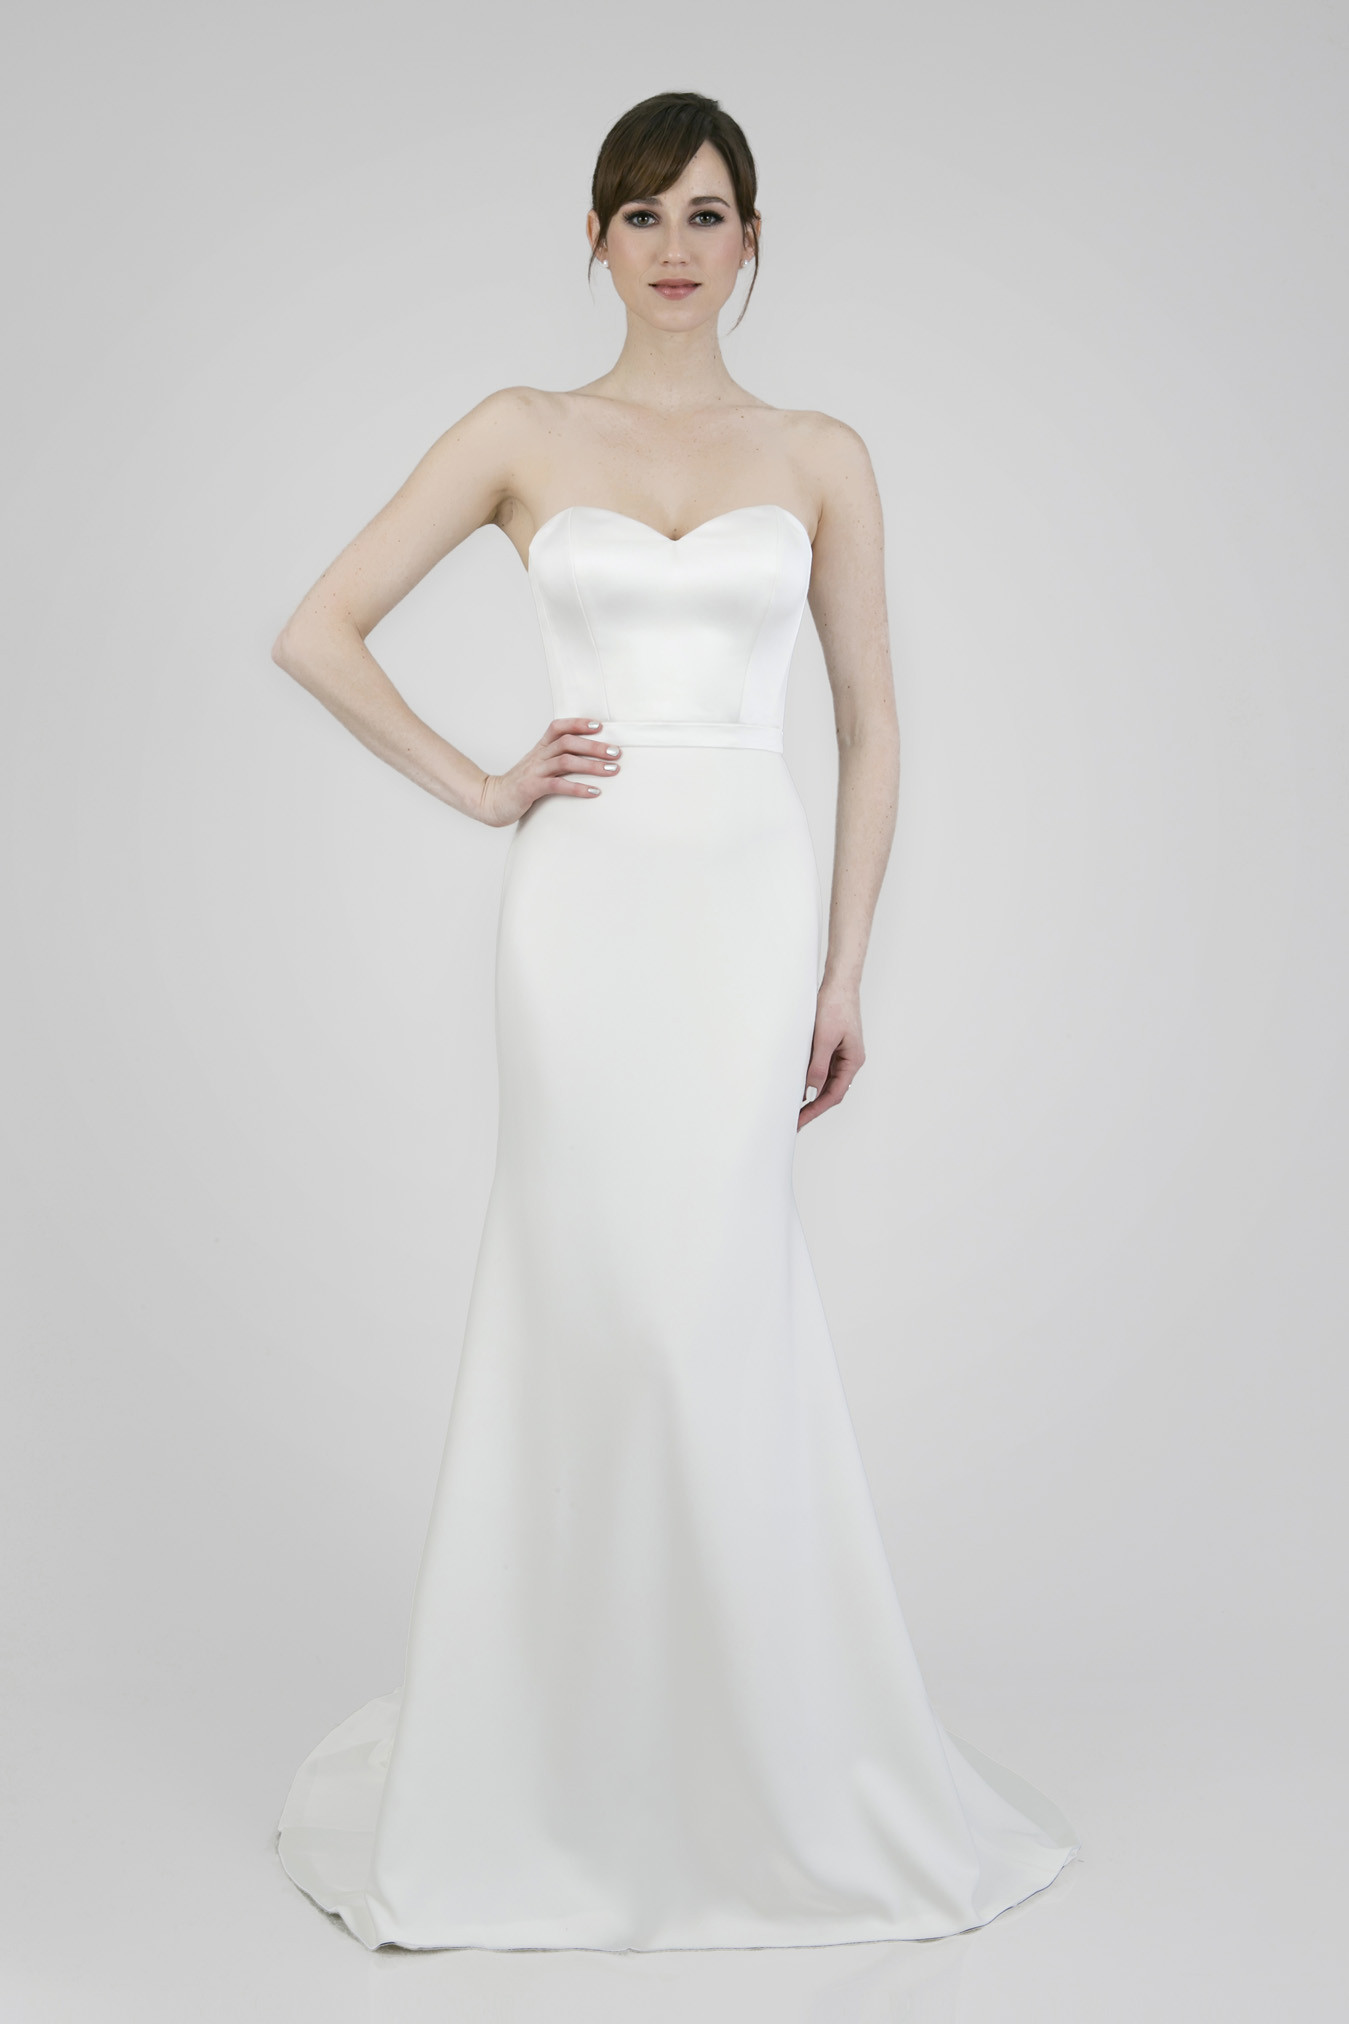 Clean crepe and satin wedding dress with sweetheart neckline Orlando, FL